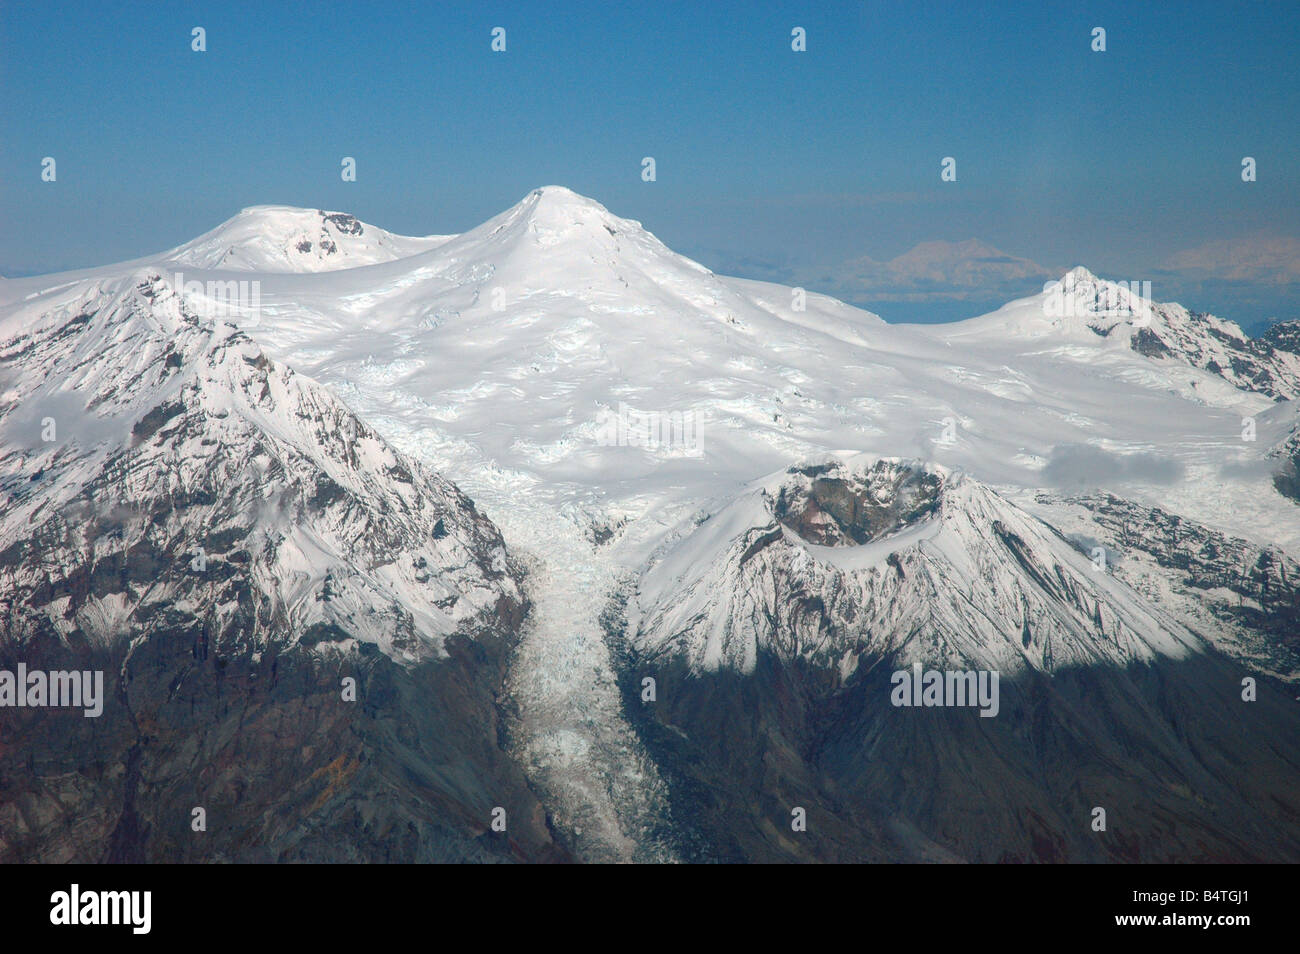 Snow-capped Mount Spurr Volcano and Crater Peak, Alaska USA - Stock Image